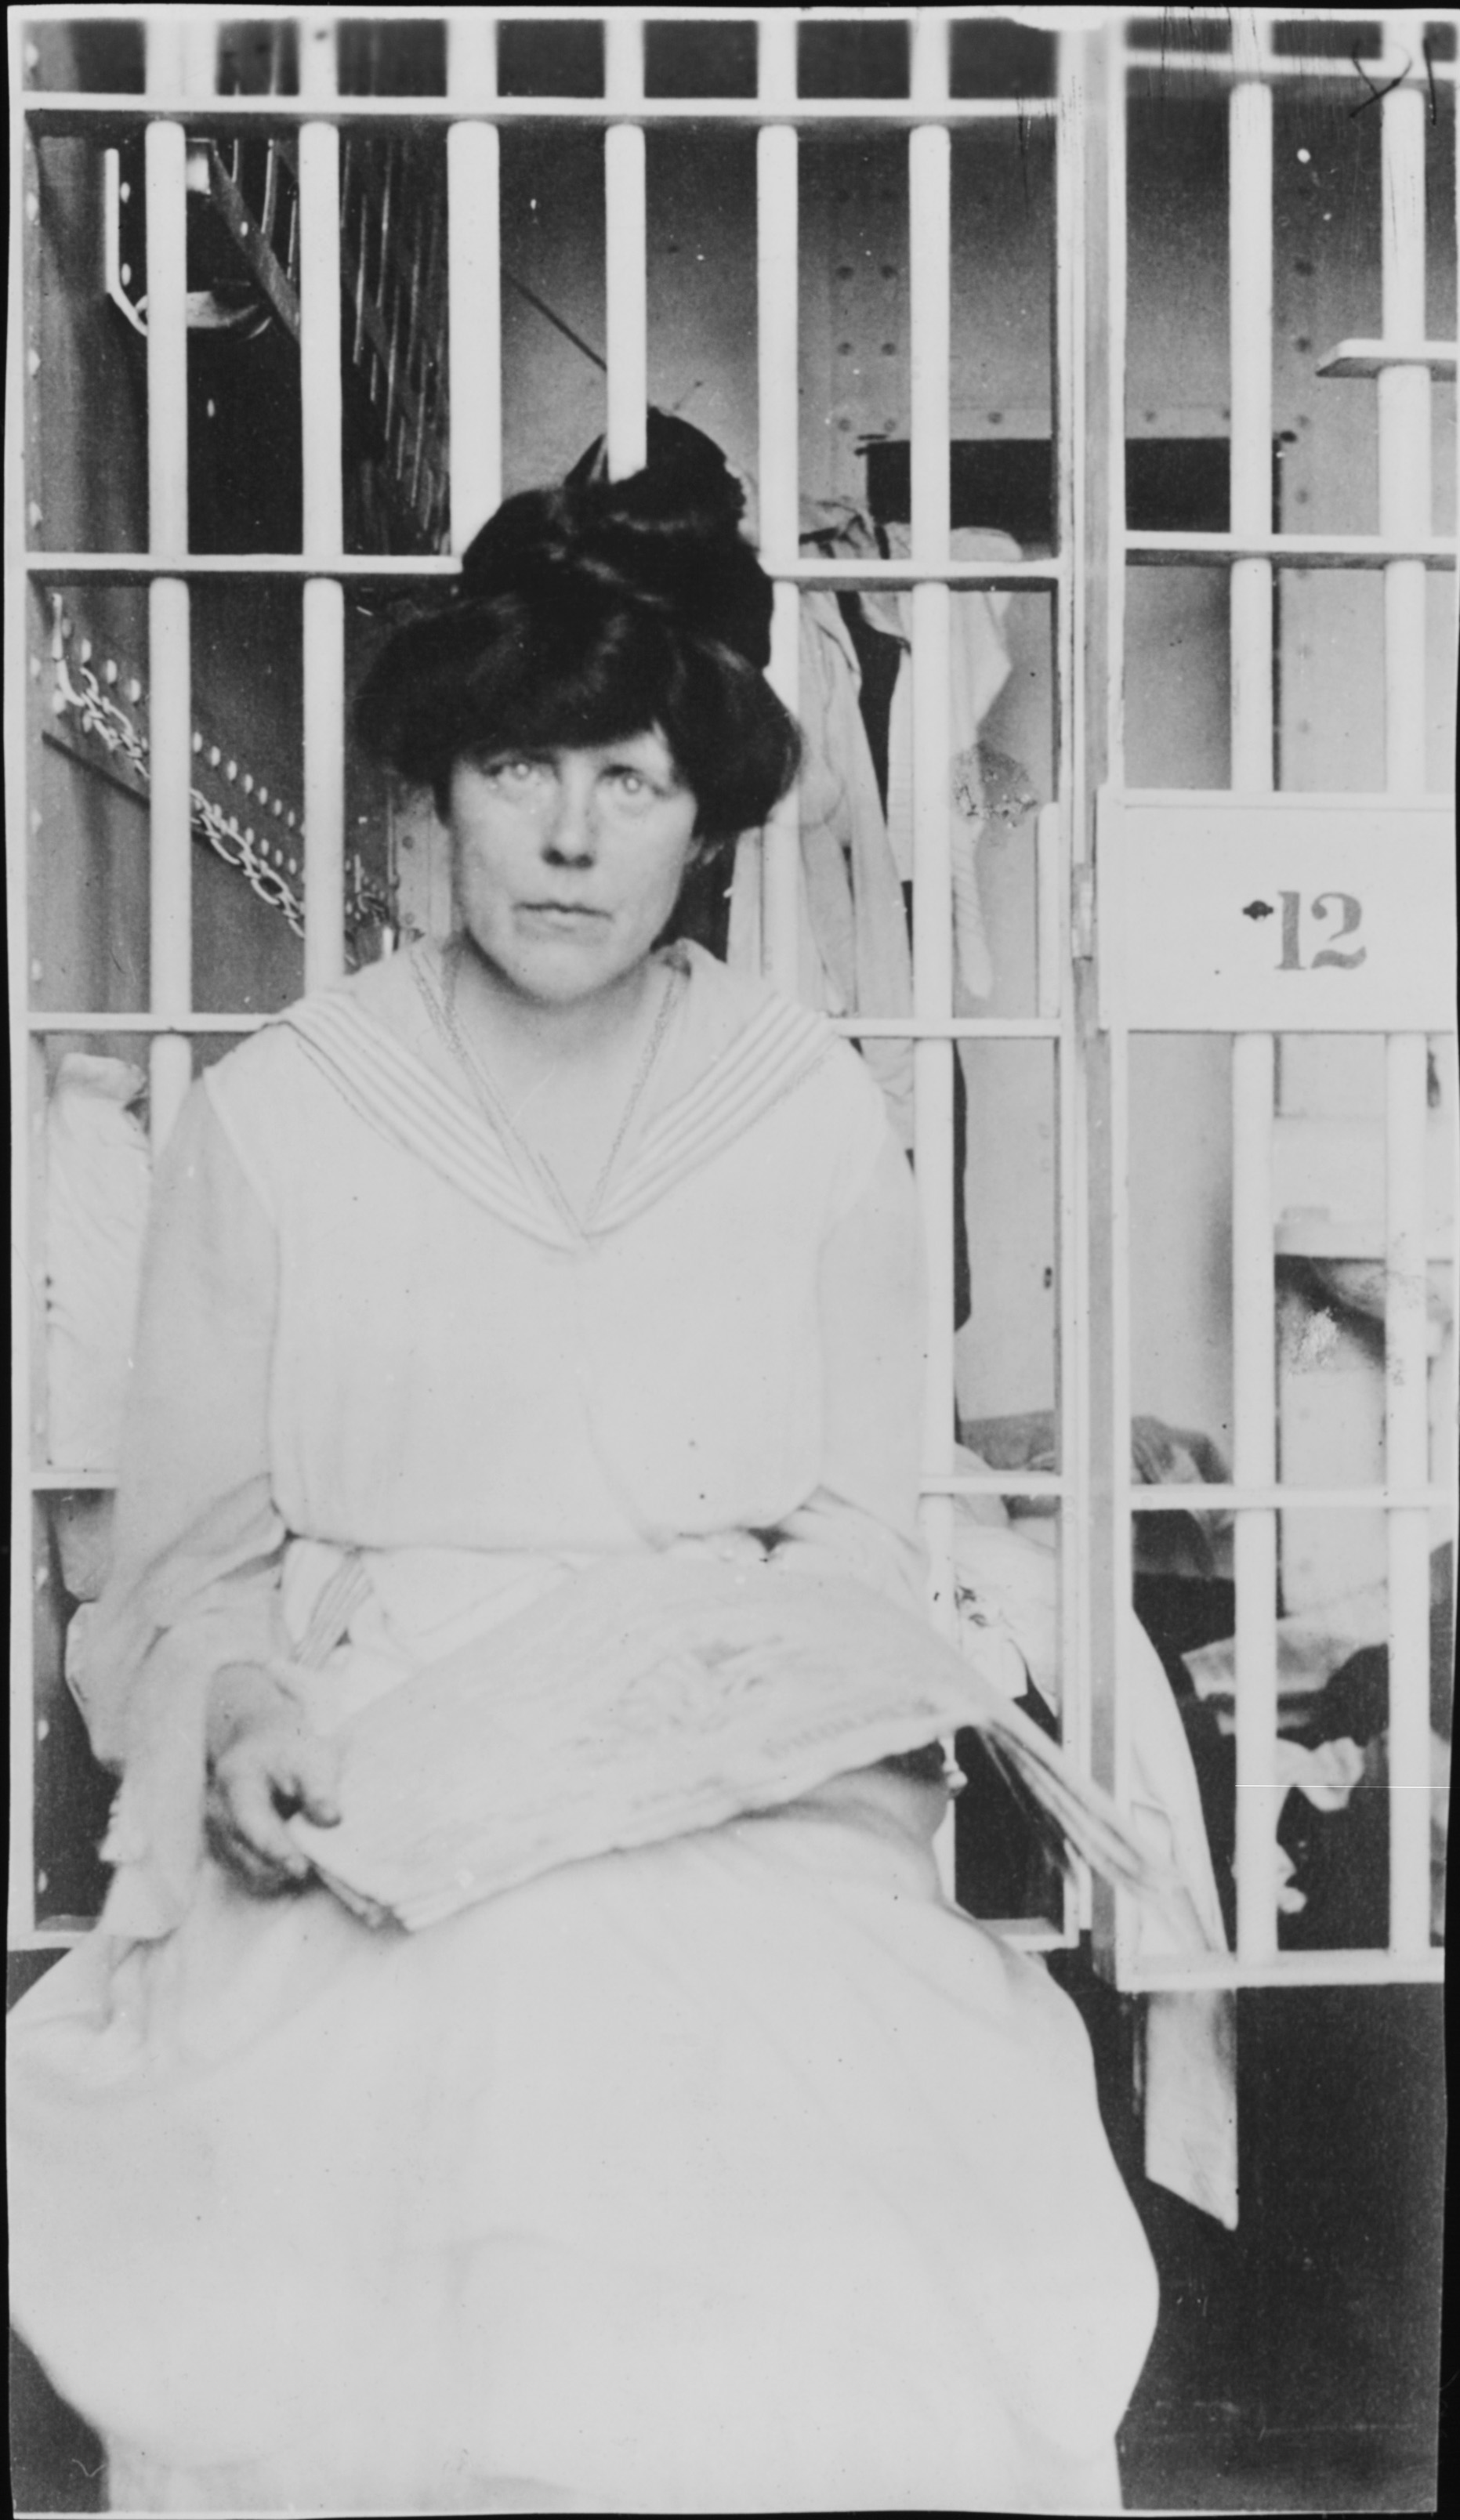 Burns, Miss Lucy, of C.U.W.S. in Jail